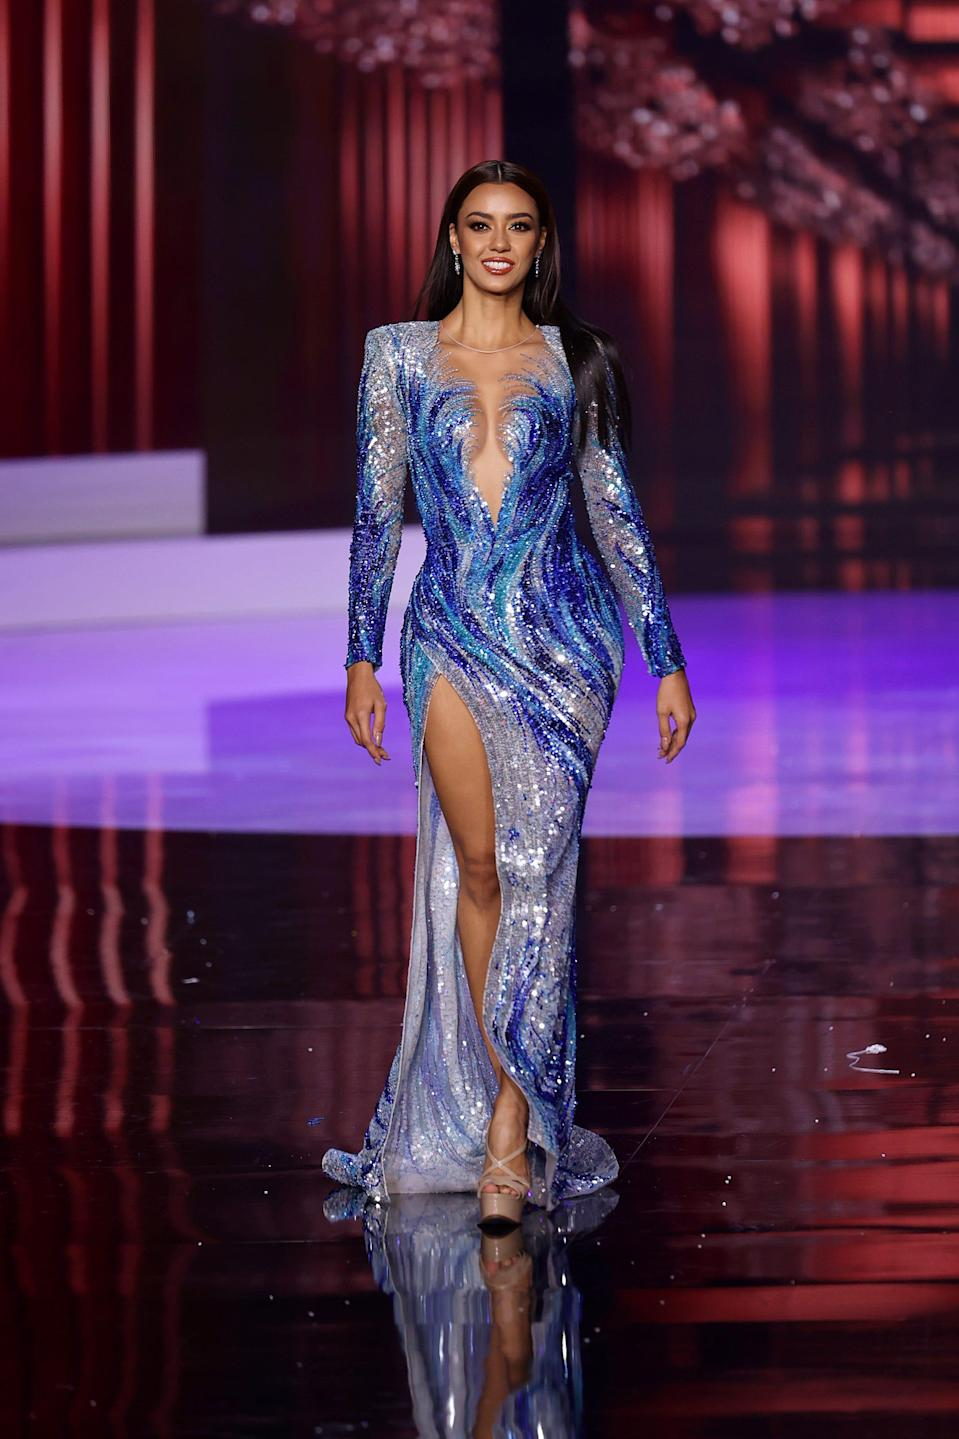 Miss Thailand at the 2021 Miss Universe competition on May 16